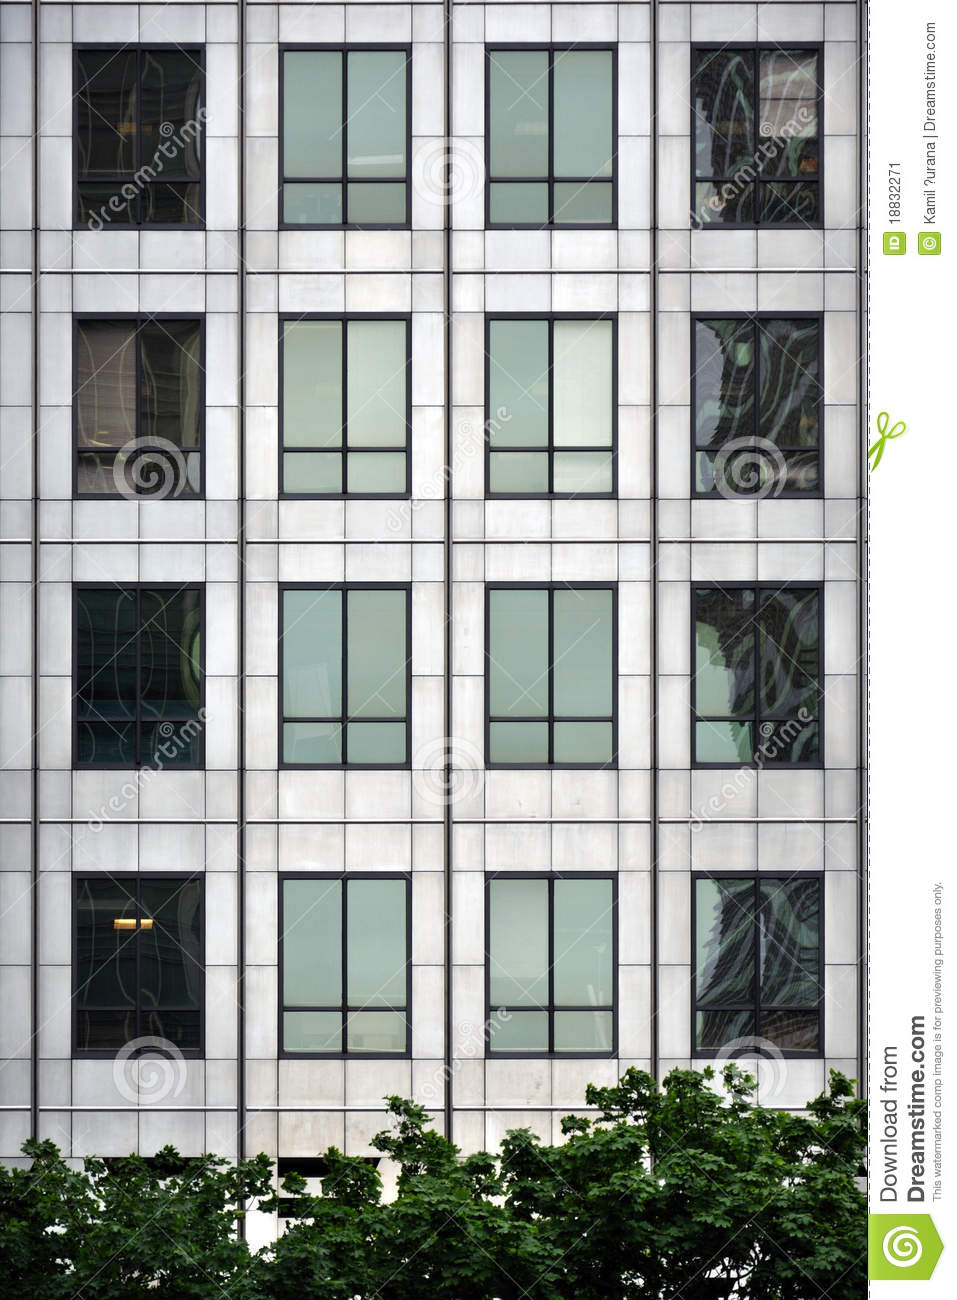 Window facade  Steel And Glass - Modern Window Facade Stock Image - Image: 18832271